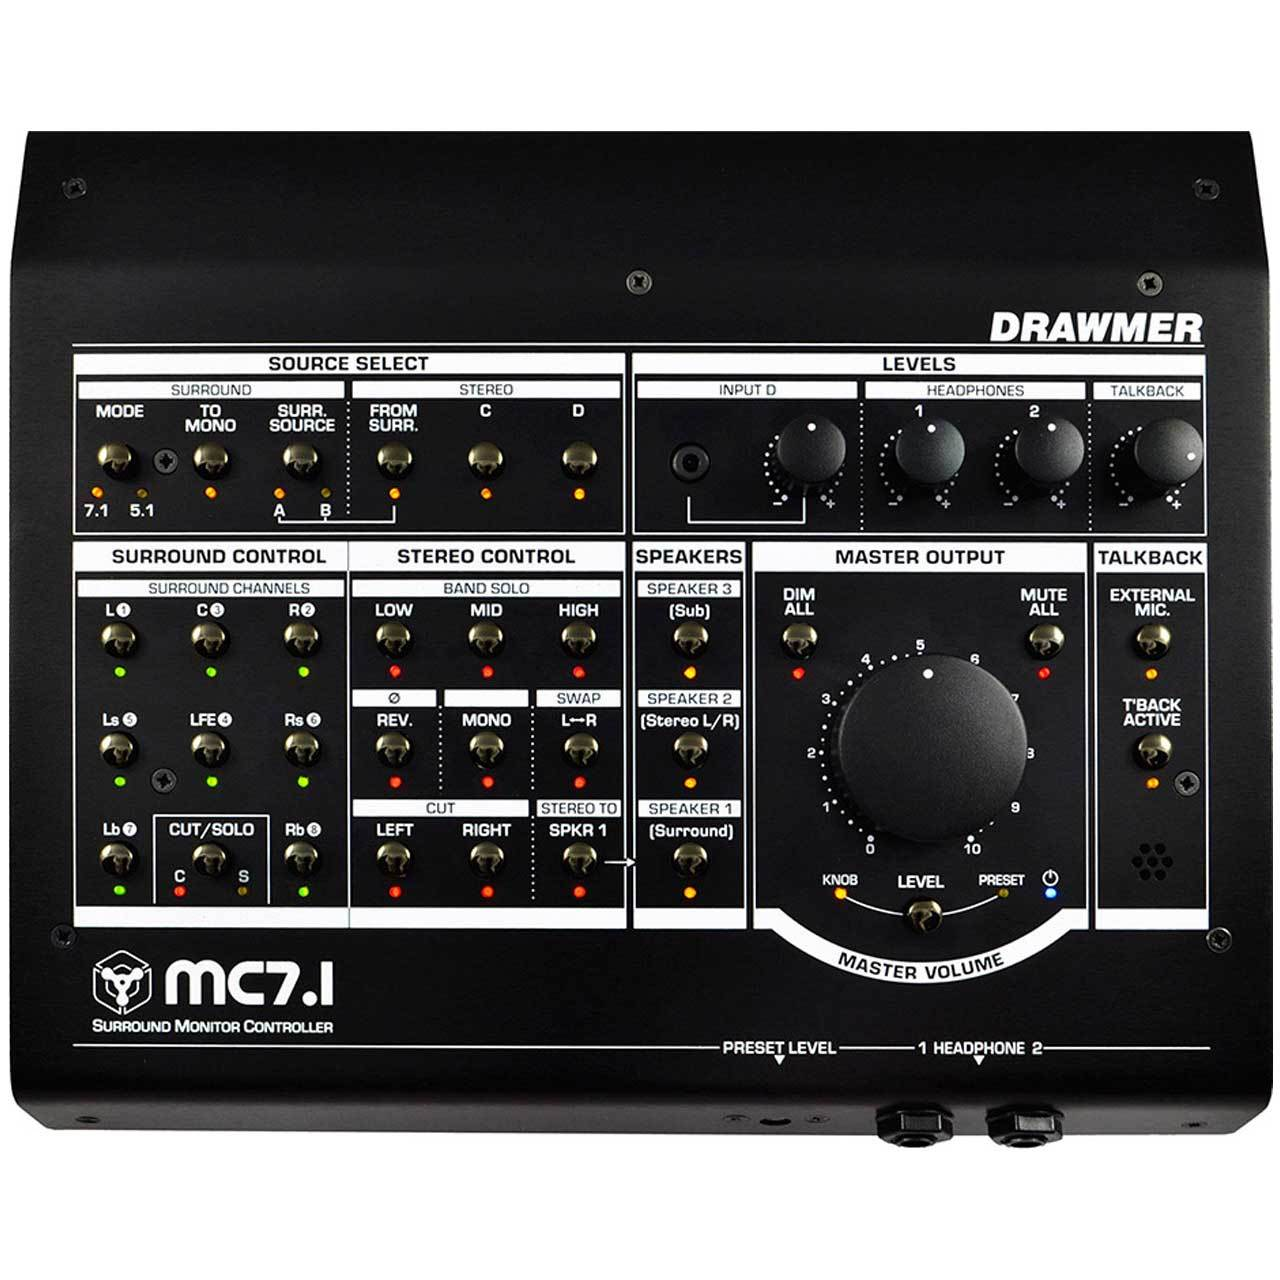 Monitor Controllers - Drawmer MC7.1 - Surround Monitor Controller